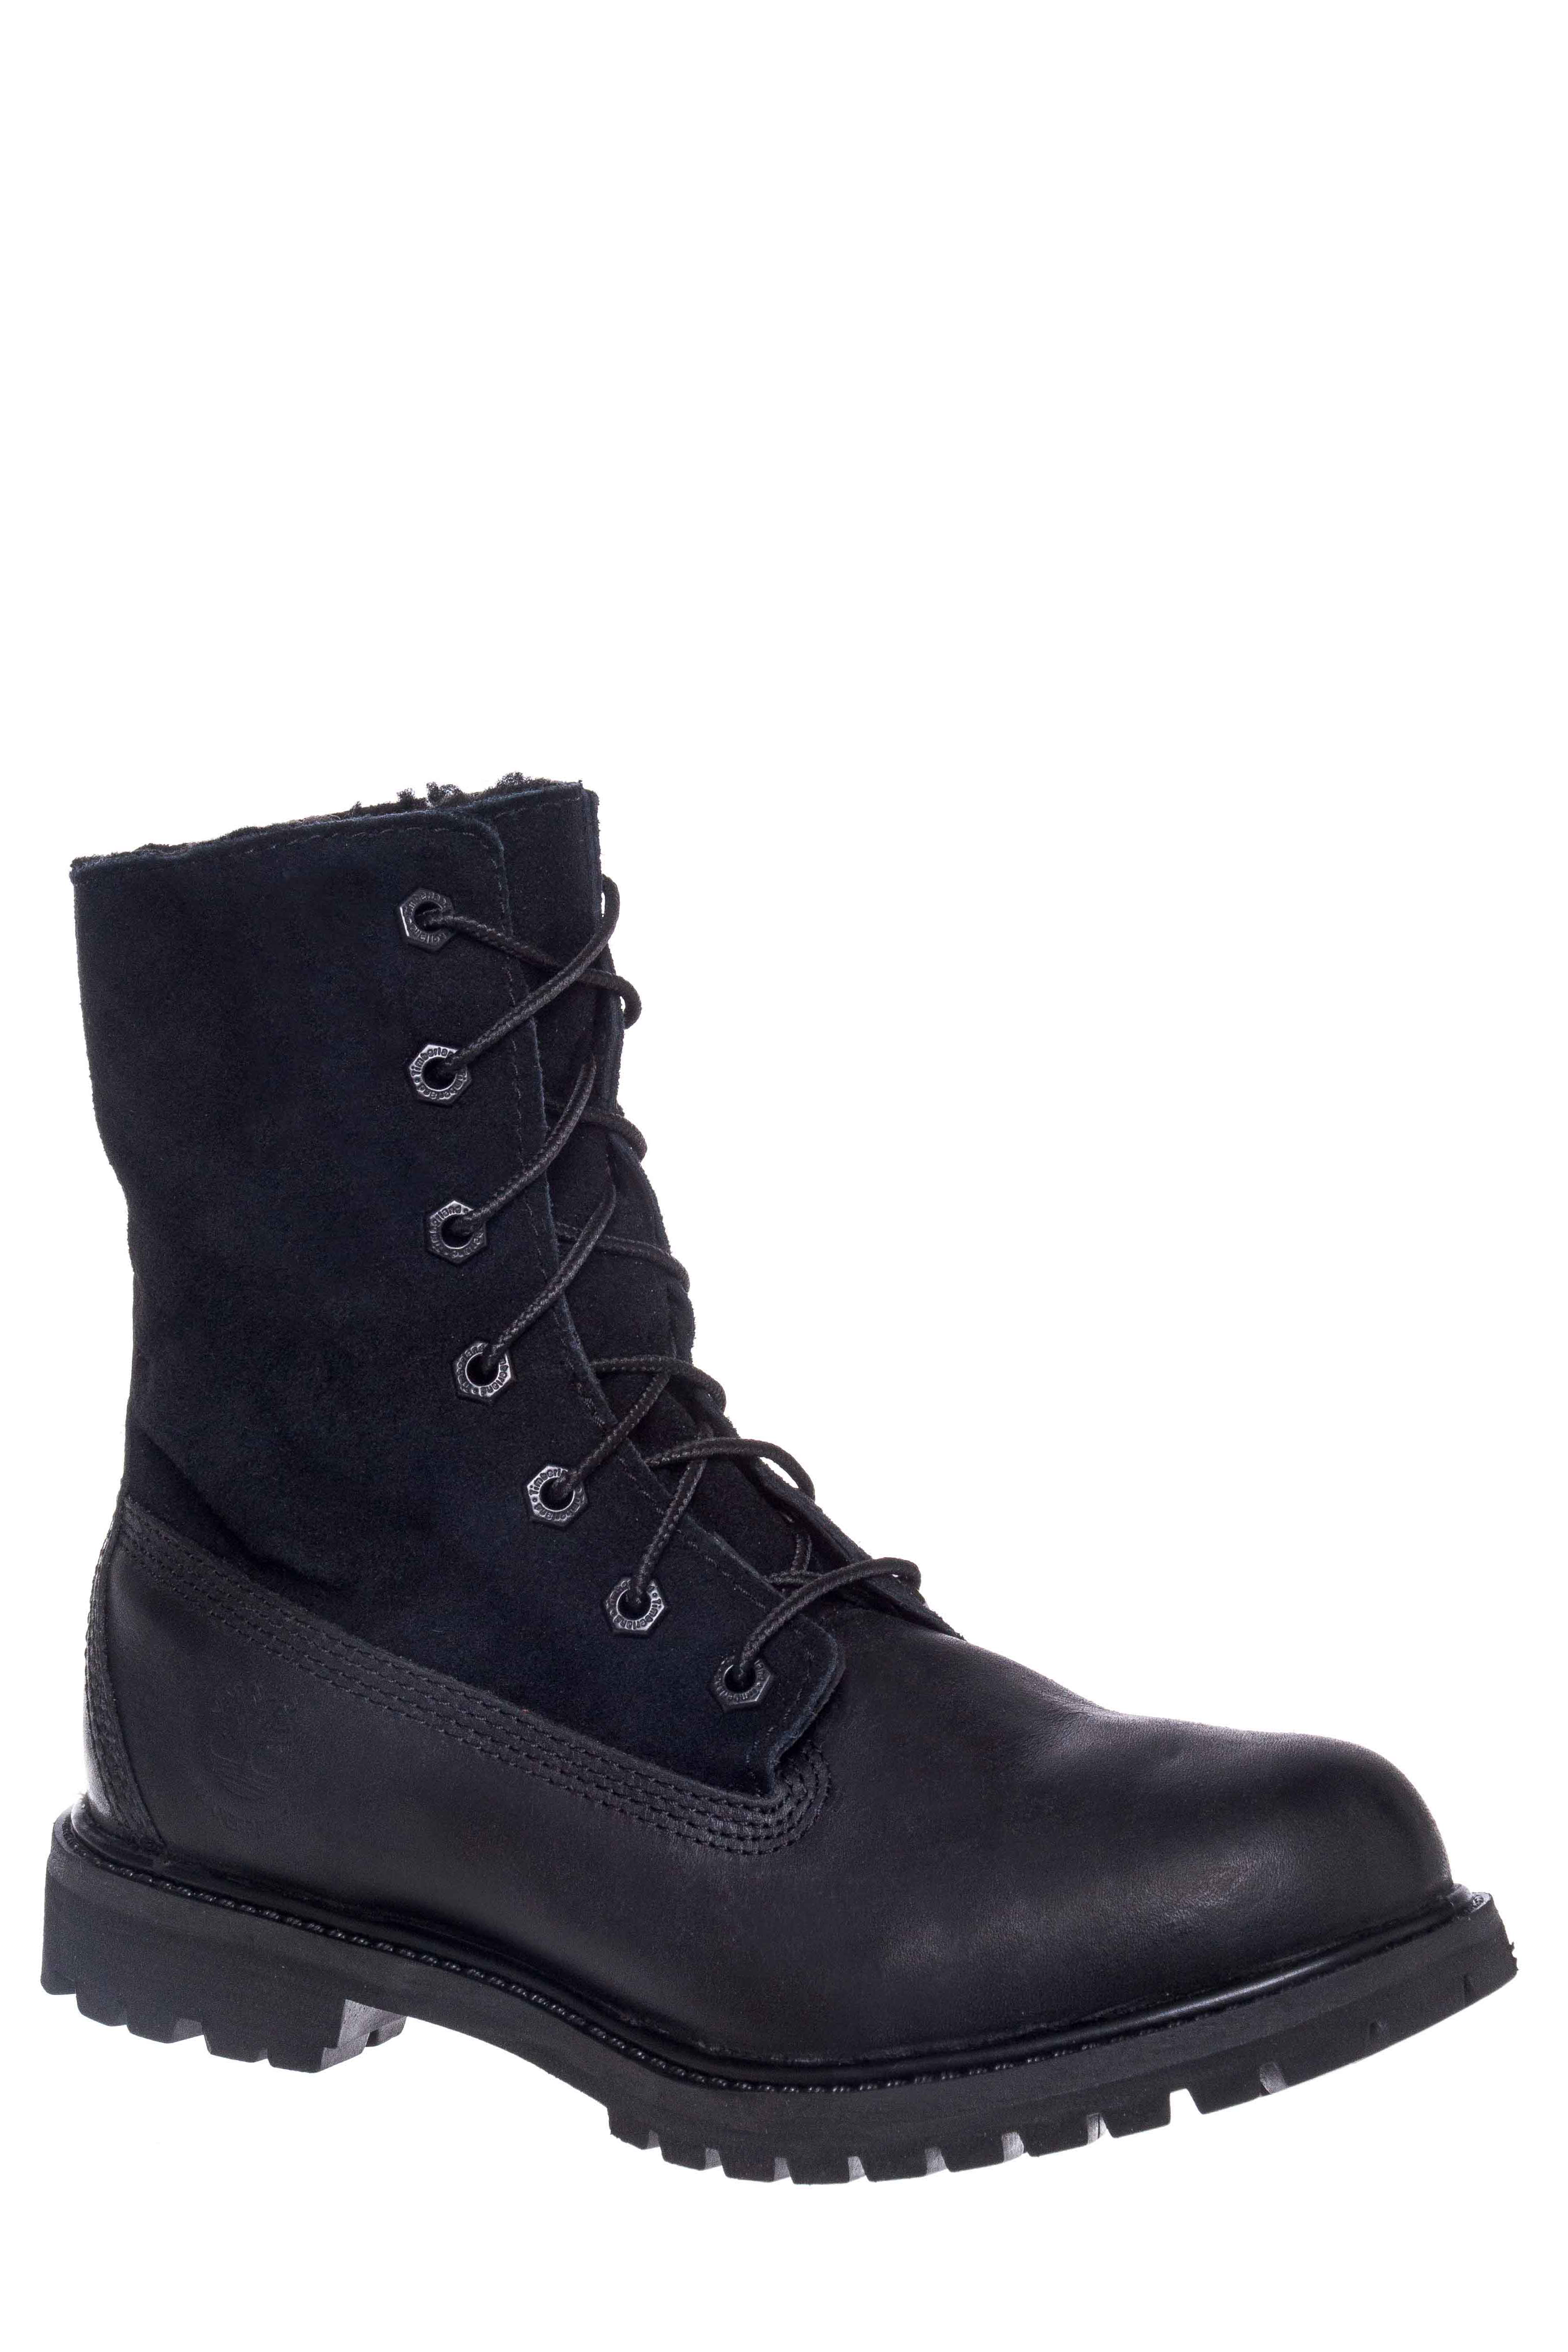 Timberland Earthkeeper's Authentics Lace-Up Boots - Black